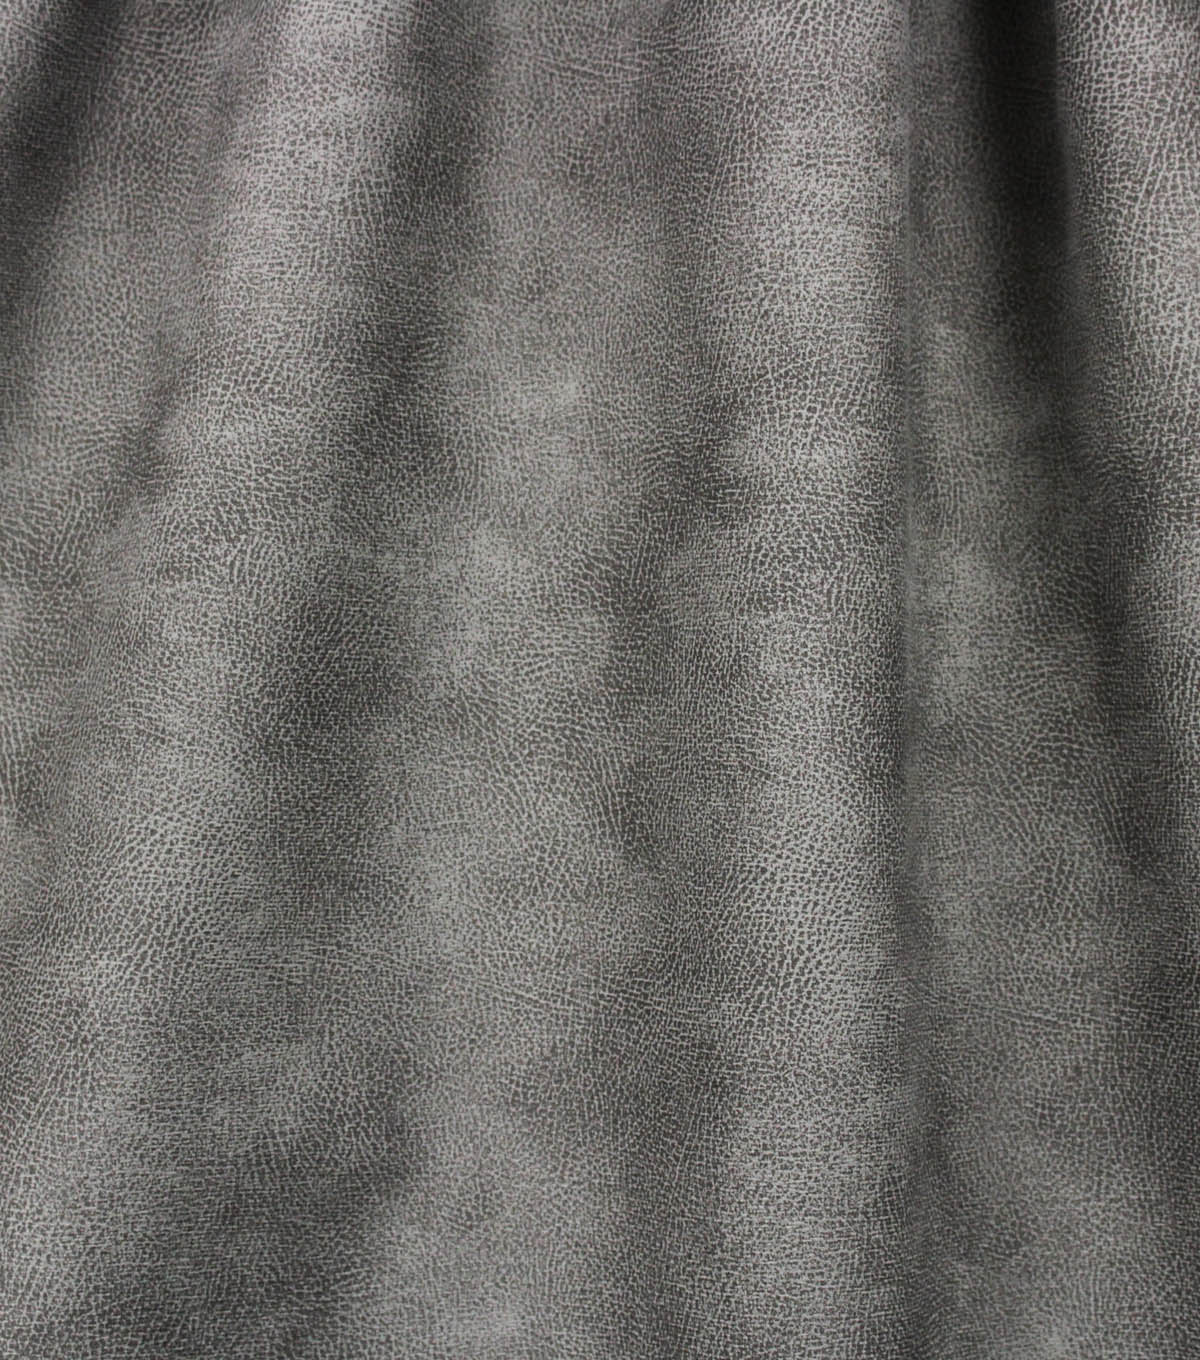 Richloom Studio Multi-Purpose Decor Fabric 55\u0027\u0027-Graphite Limpkin